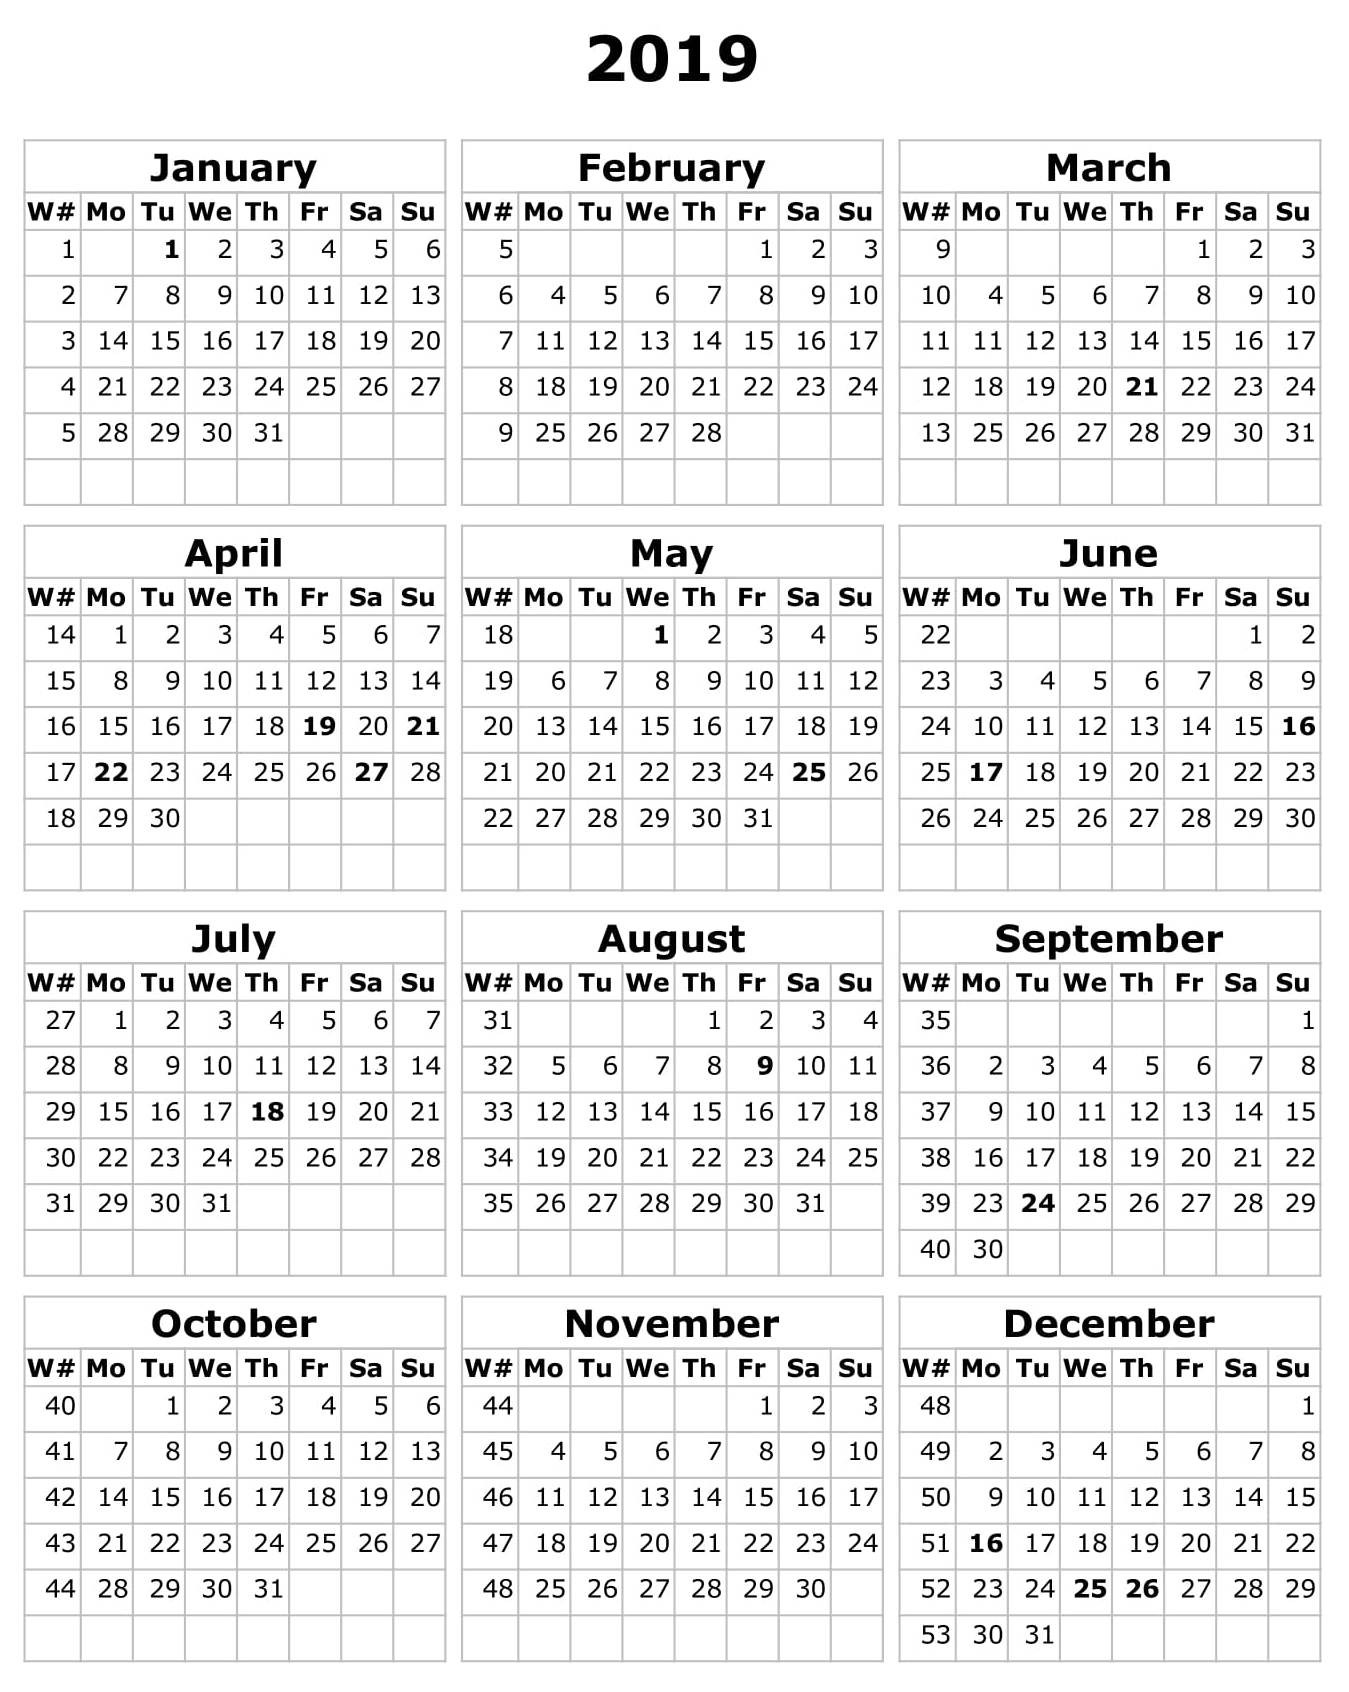 2019 Calendar Template Excel South Africa – Free Calendar-Calendar Template South Africa